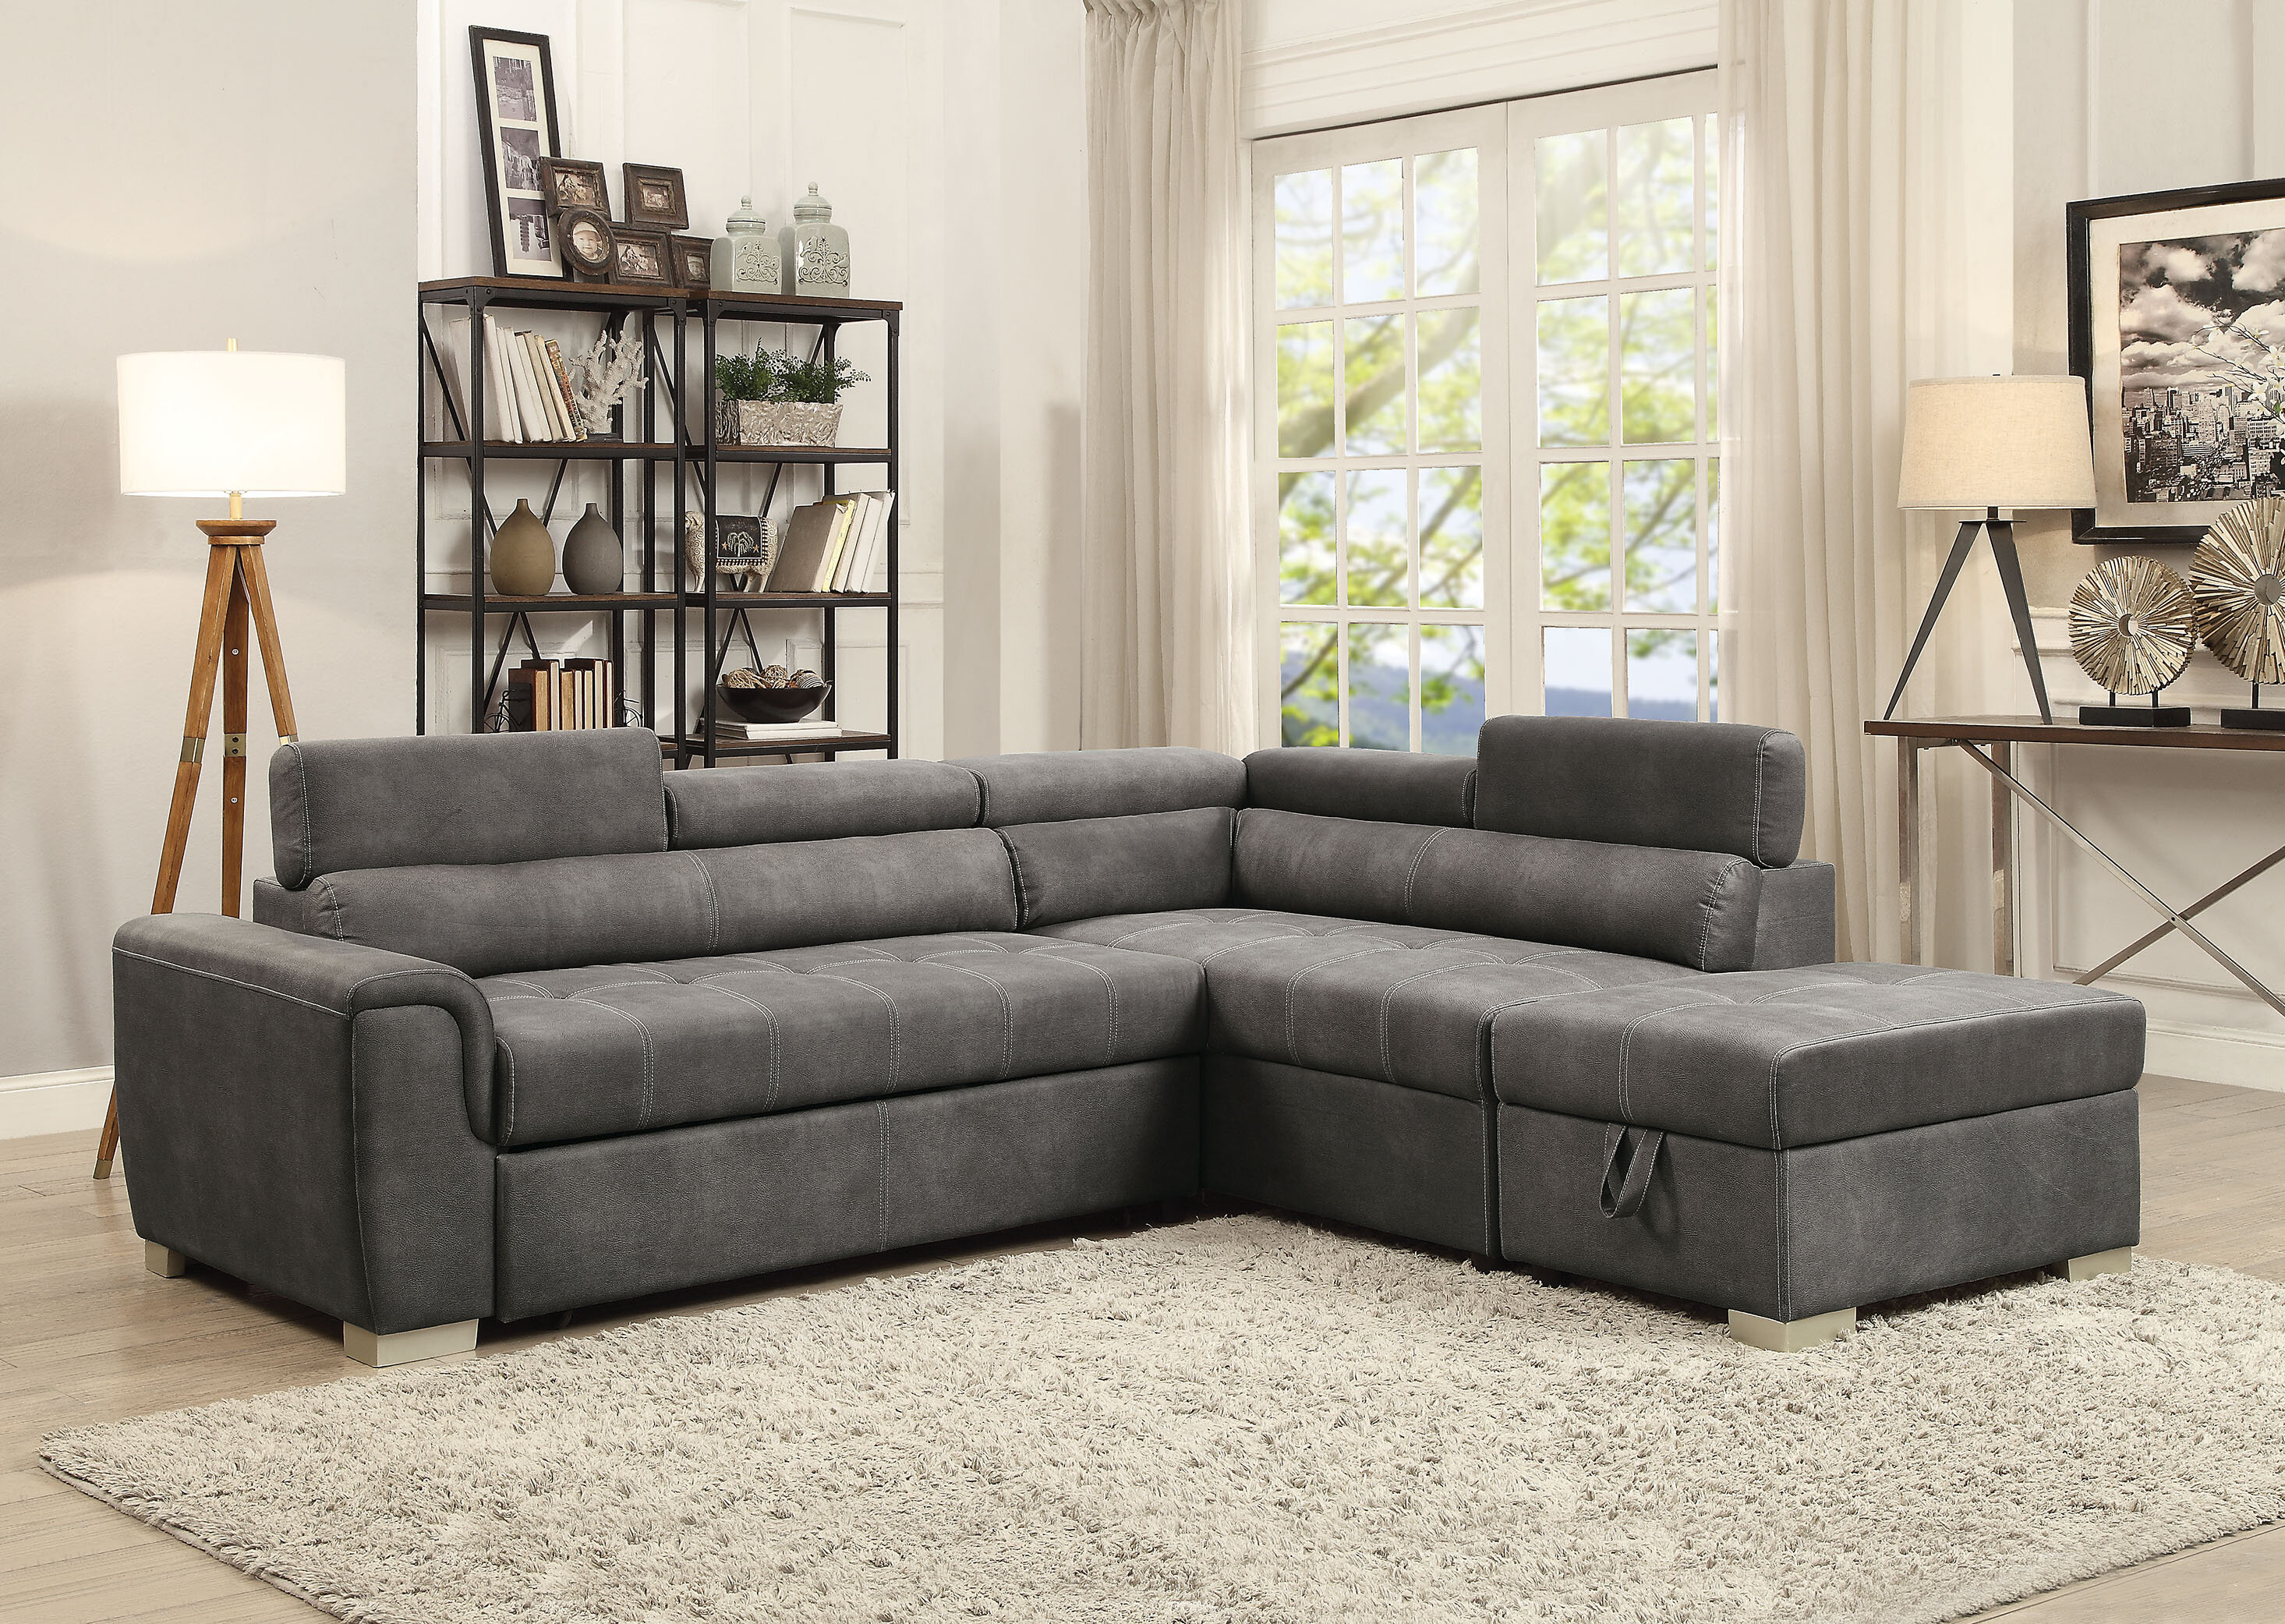 Magnificent Brayden Studio Truesdale Sleeper Sectional With Ottoman Caraccident5 Cool Chair Designs And Ideas Caraccident5Info